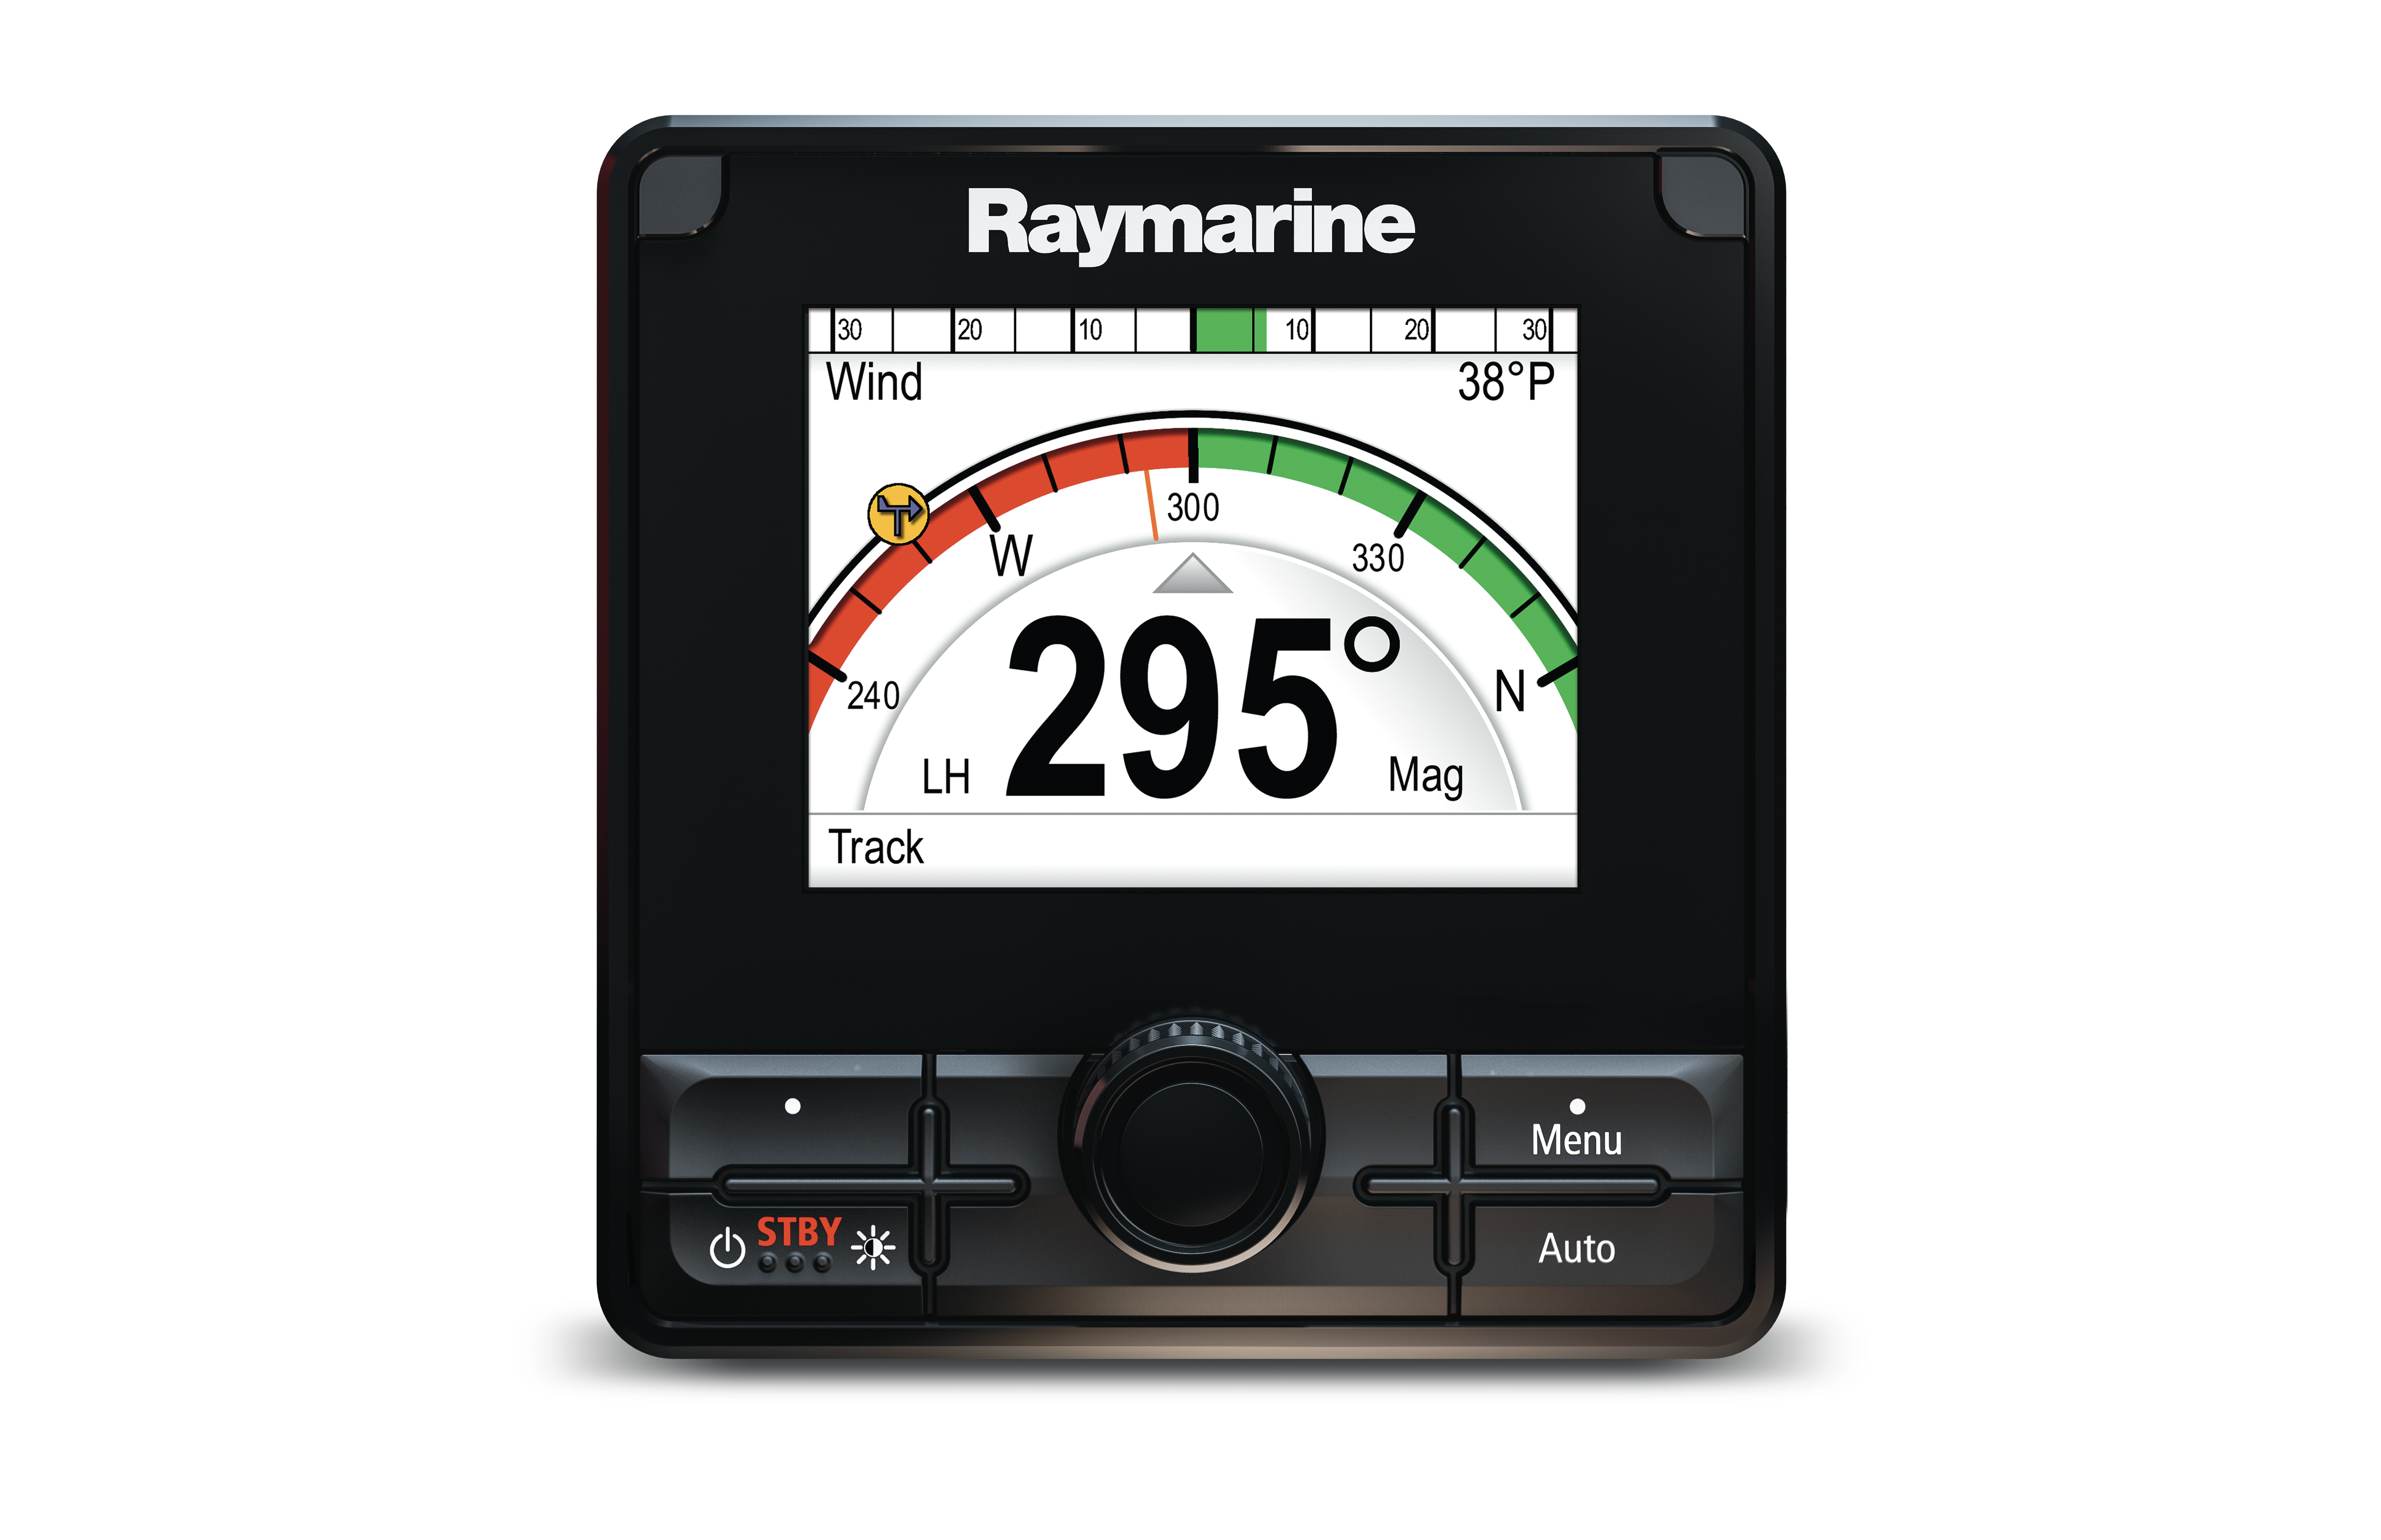 raymarine p70rs autopilot control heads front view